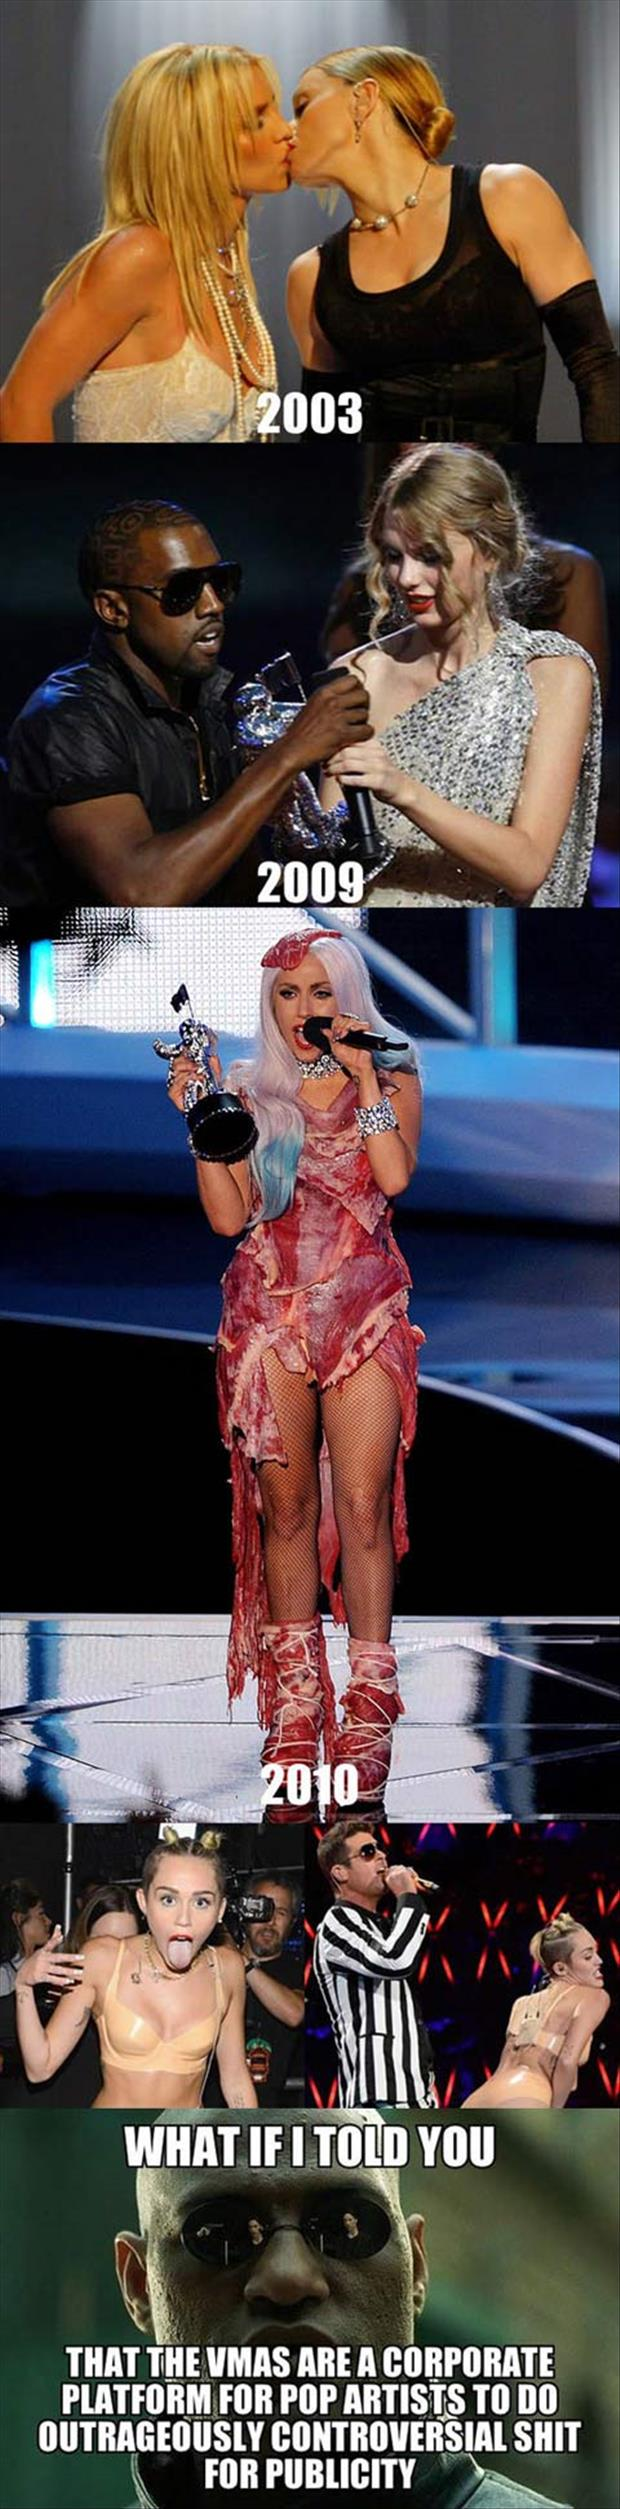 what if I told you vma awards